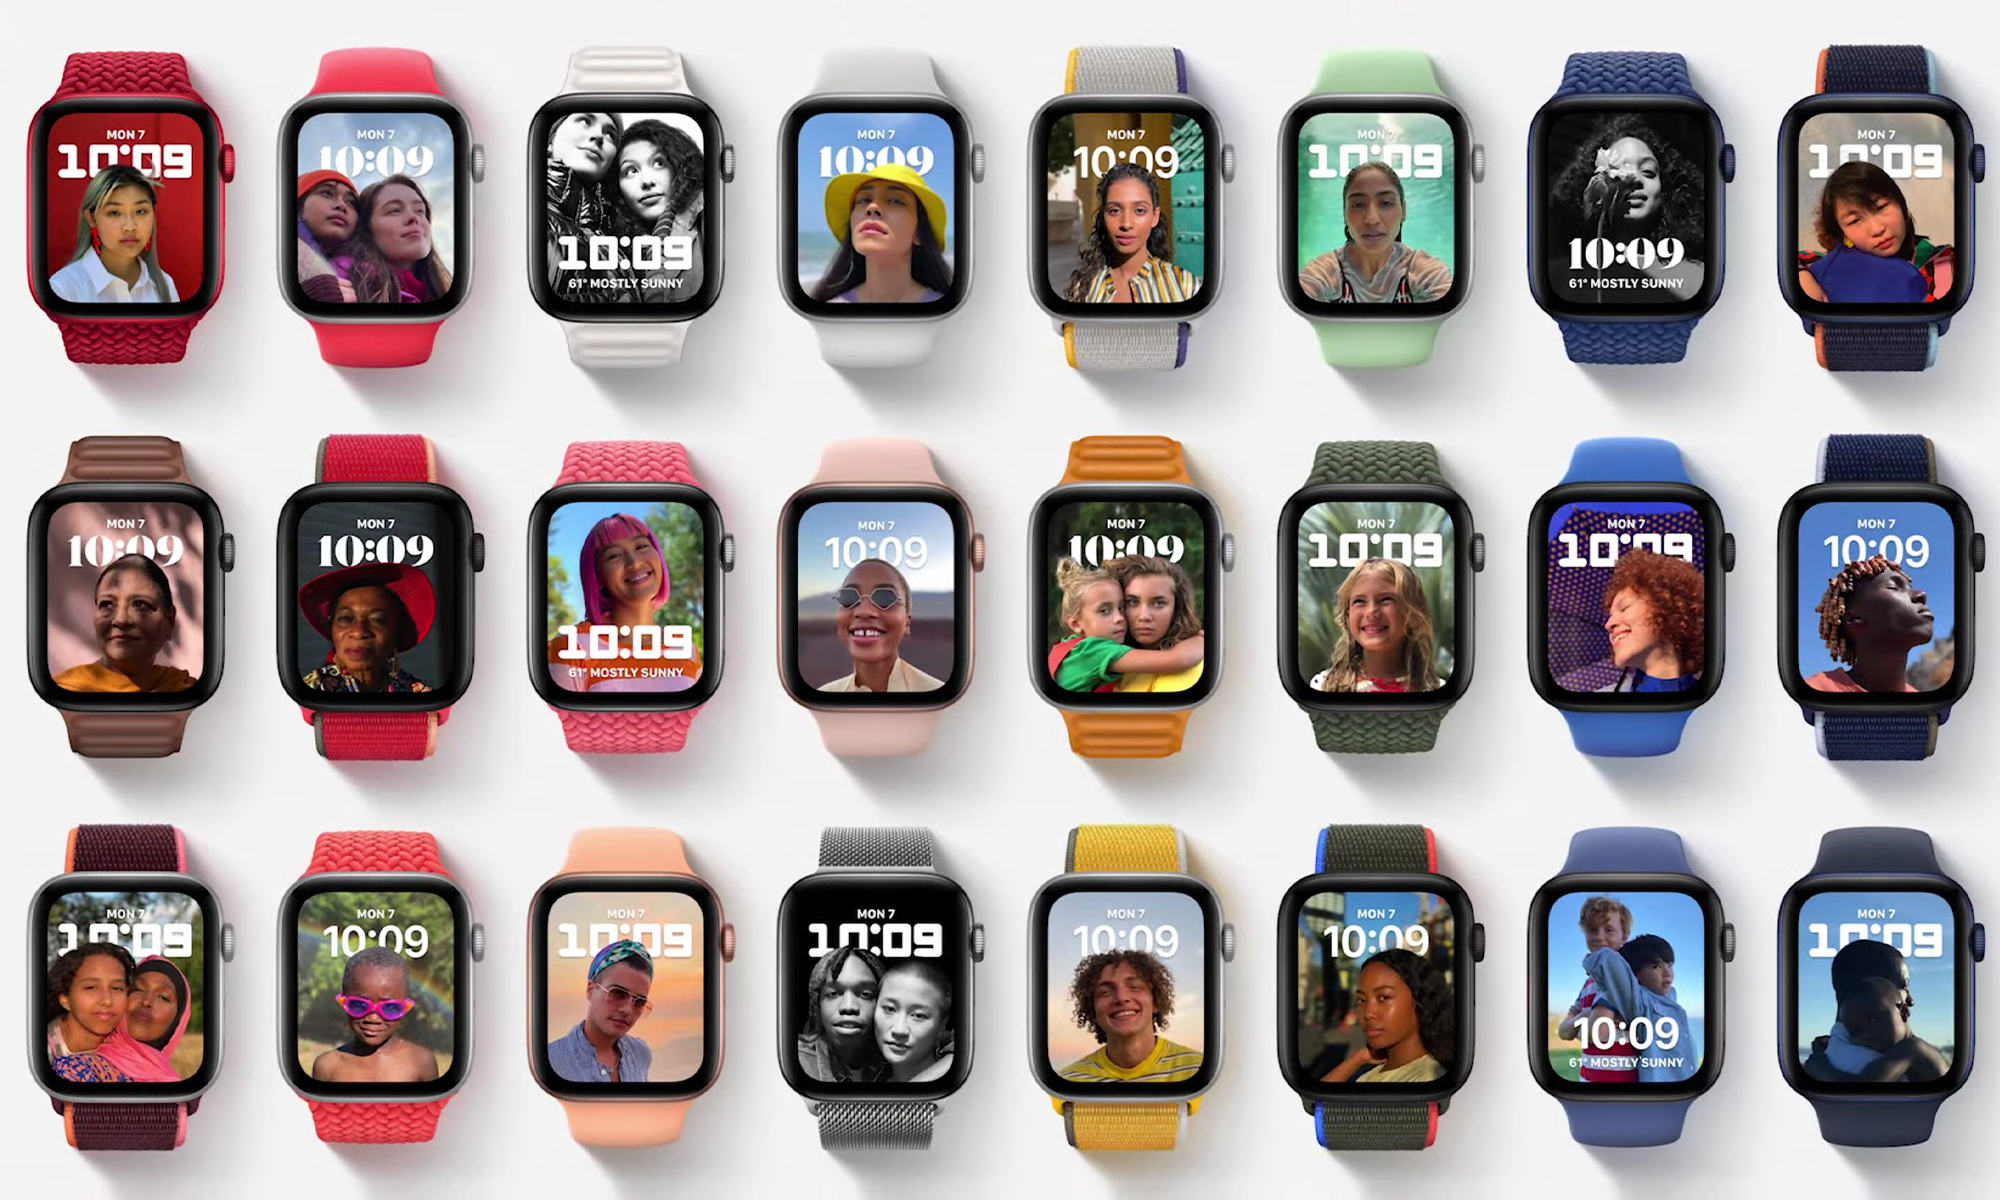 Apple's watchOS 8 adds new mindfulness exercises and workout types – Yahoo News Australia